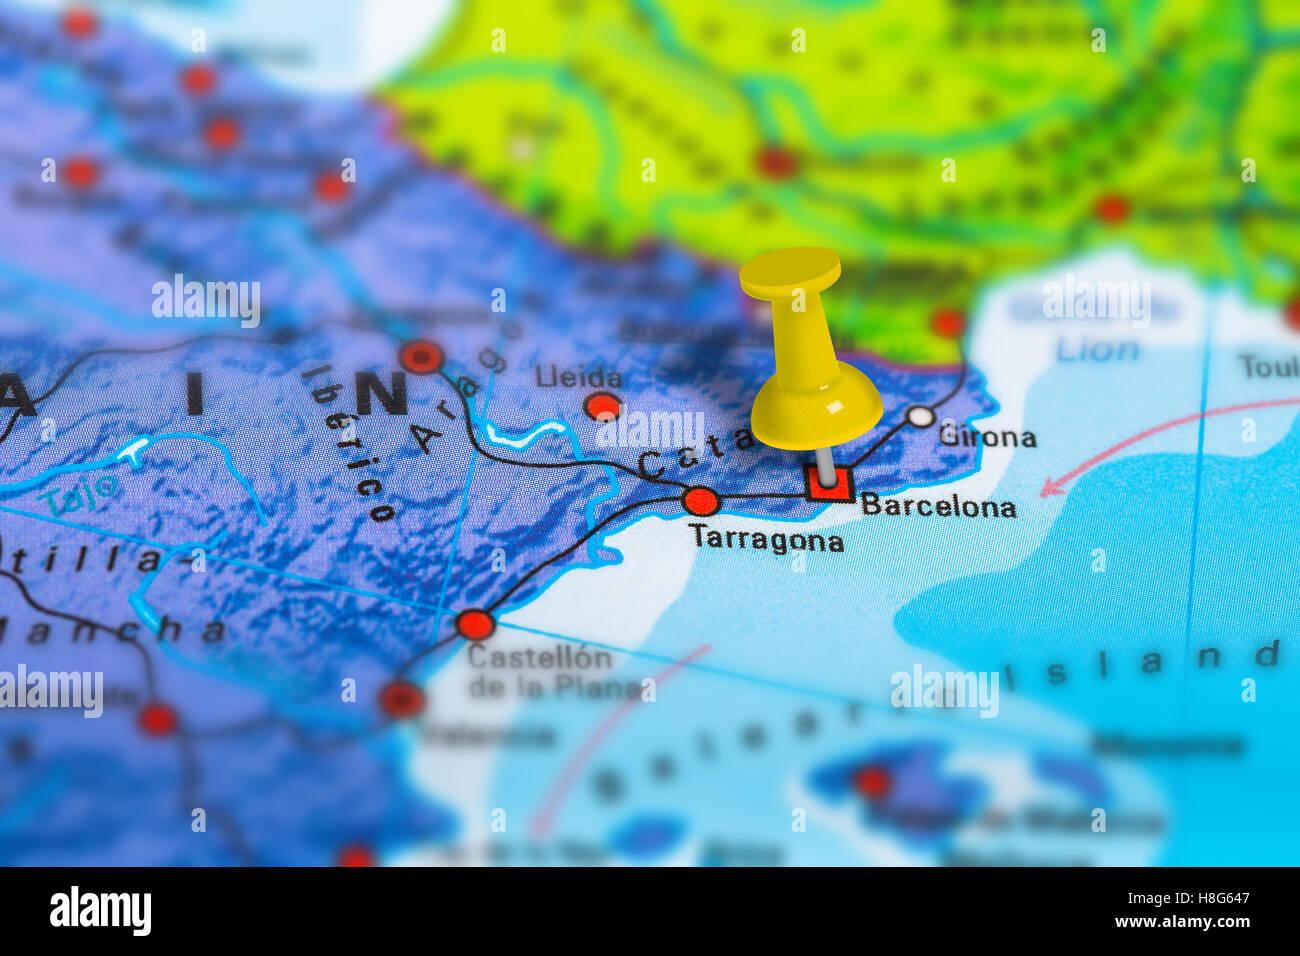 Barcelona In Spain Map.Barcelona Spain Map Stock Photo 125745879 Alamy